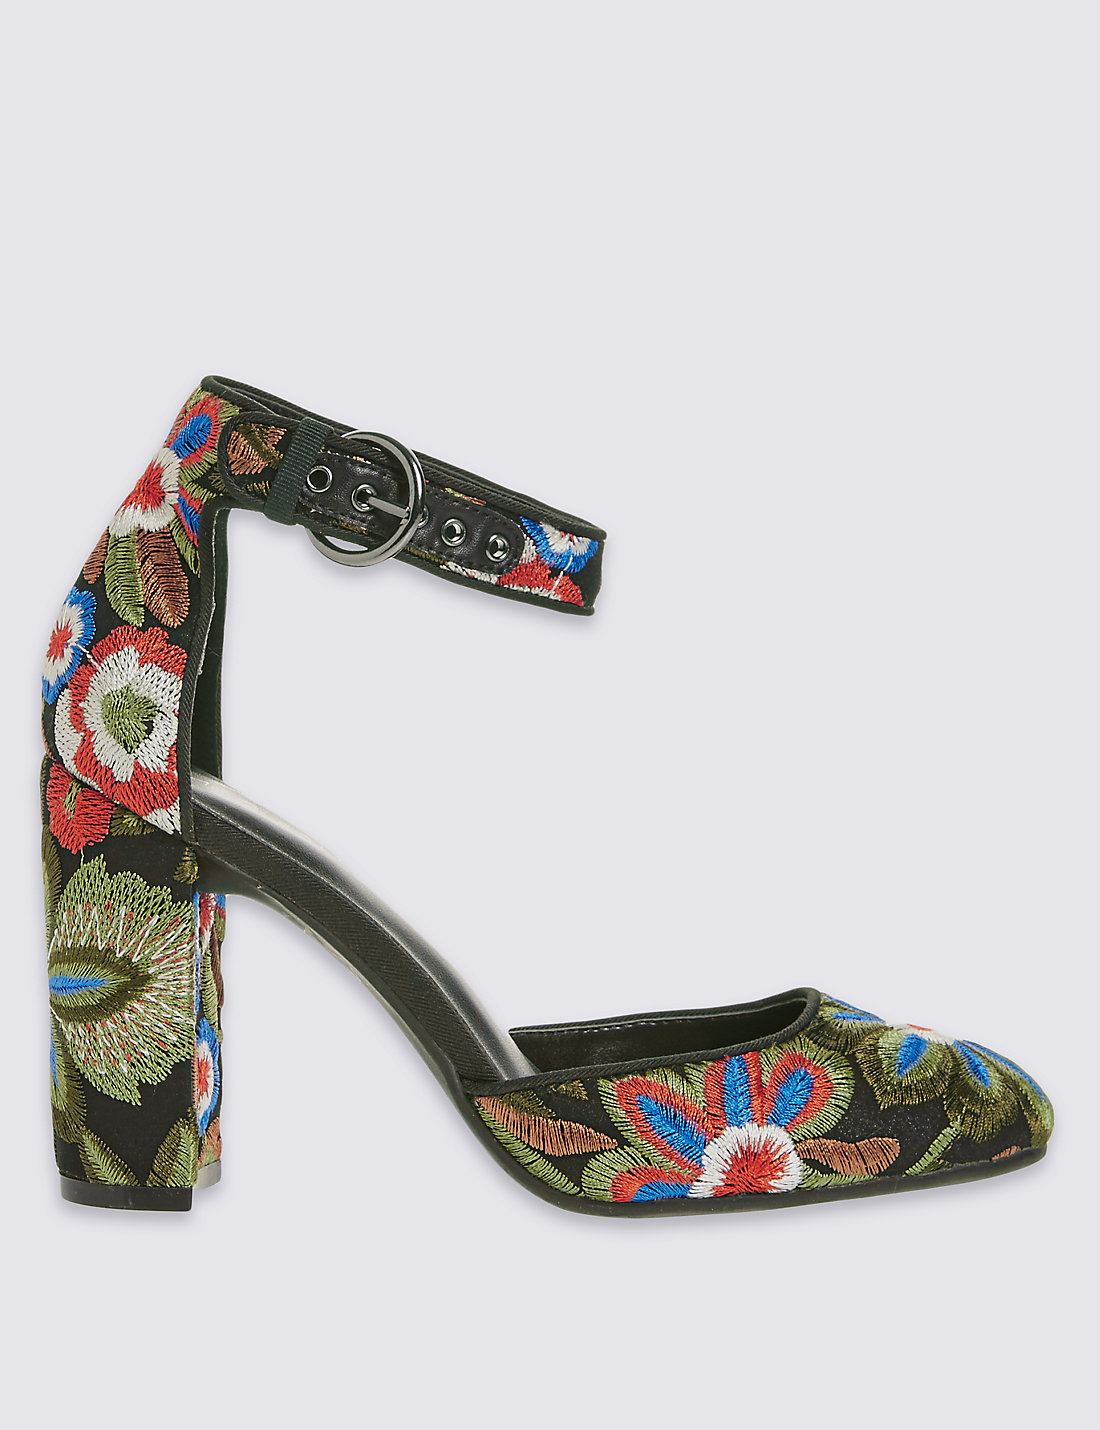 High heel embroidered court shoes with insolia ms high heel embroidered court shoes with insolia ccuart Image collections